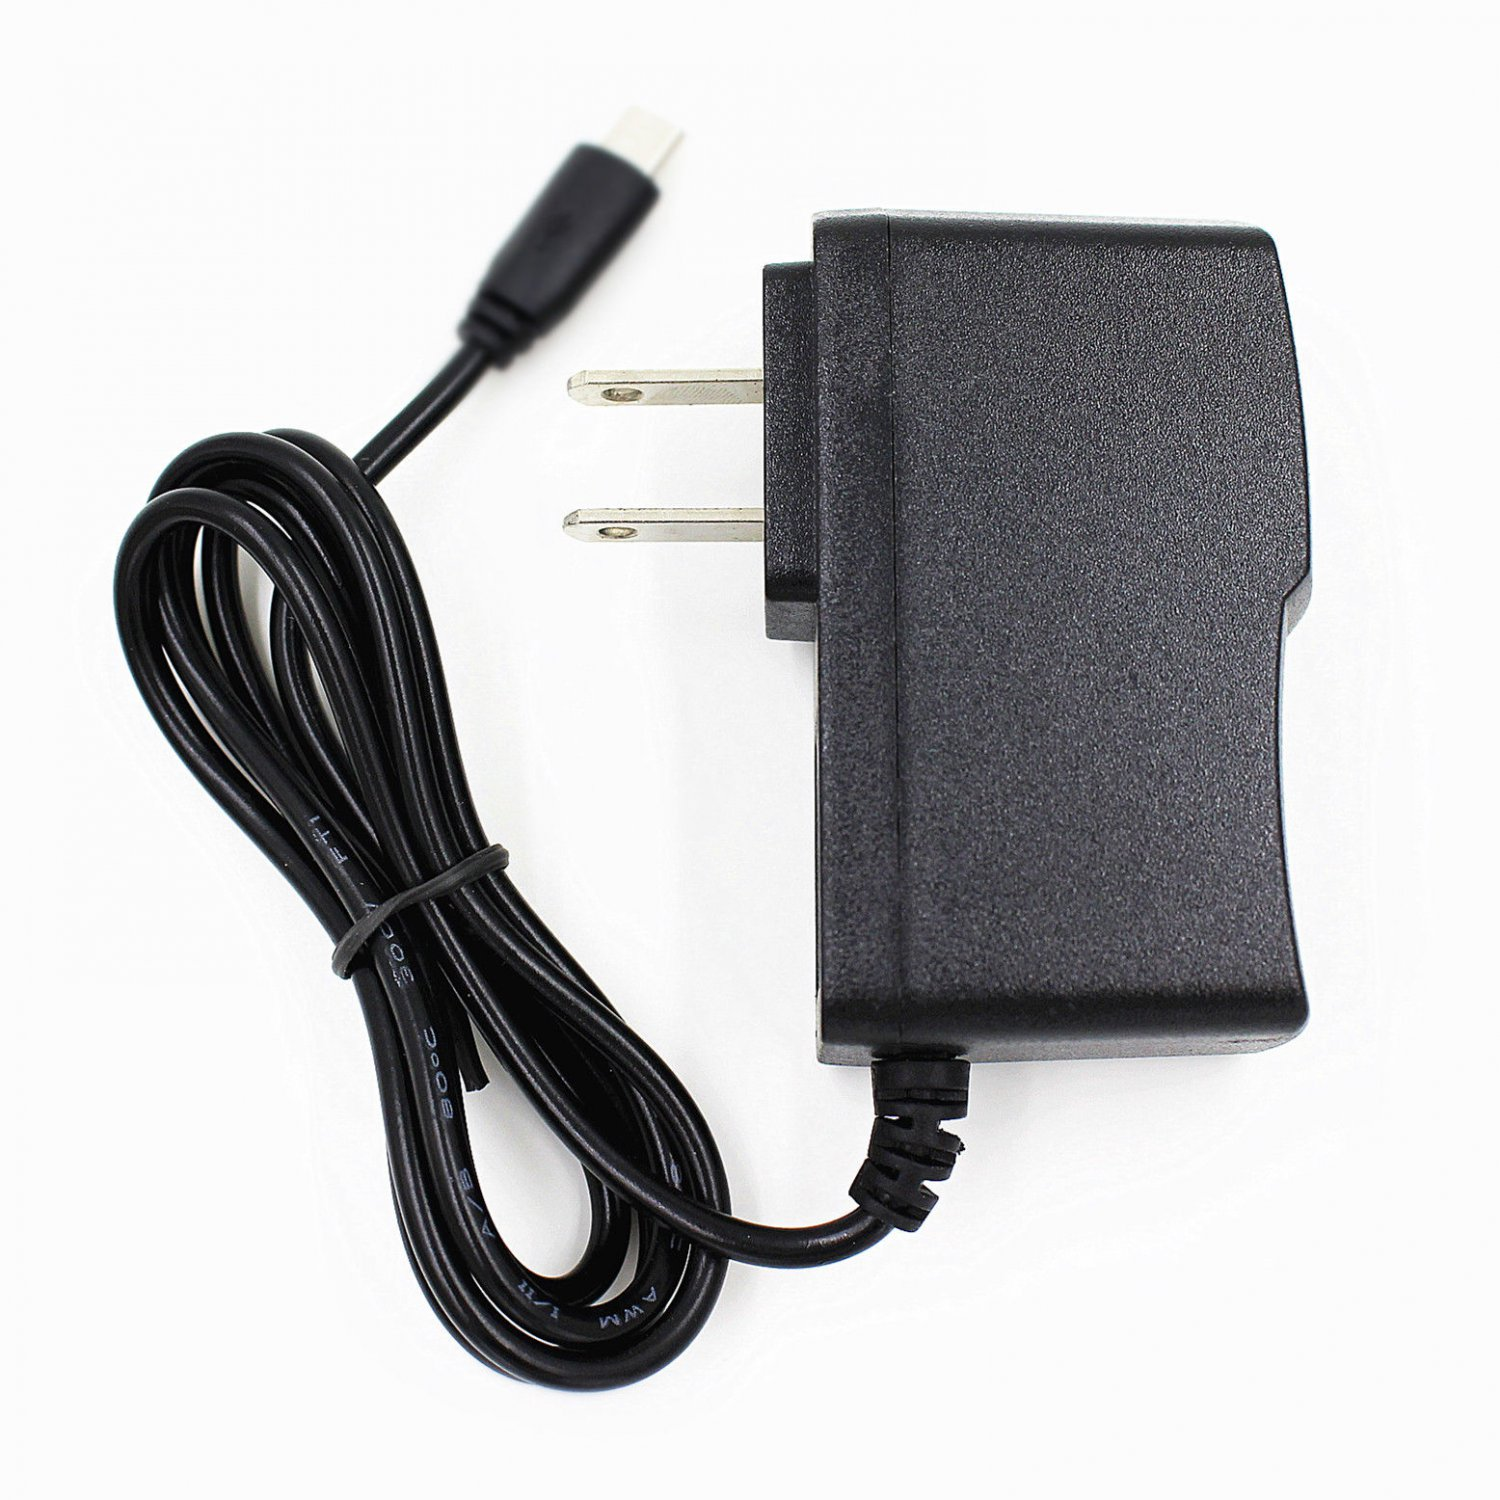 US AC/DC Power Adapter Charger For Sprint Kyocera DuraMax E4255, DuraXT E4277